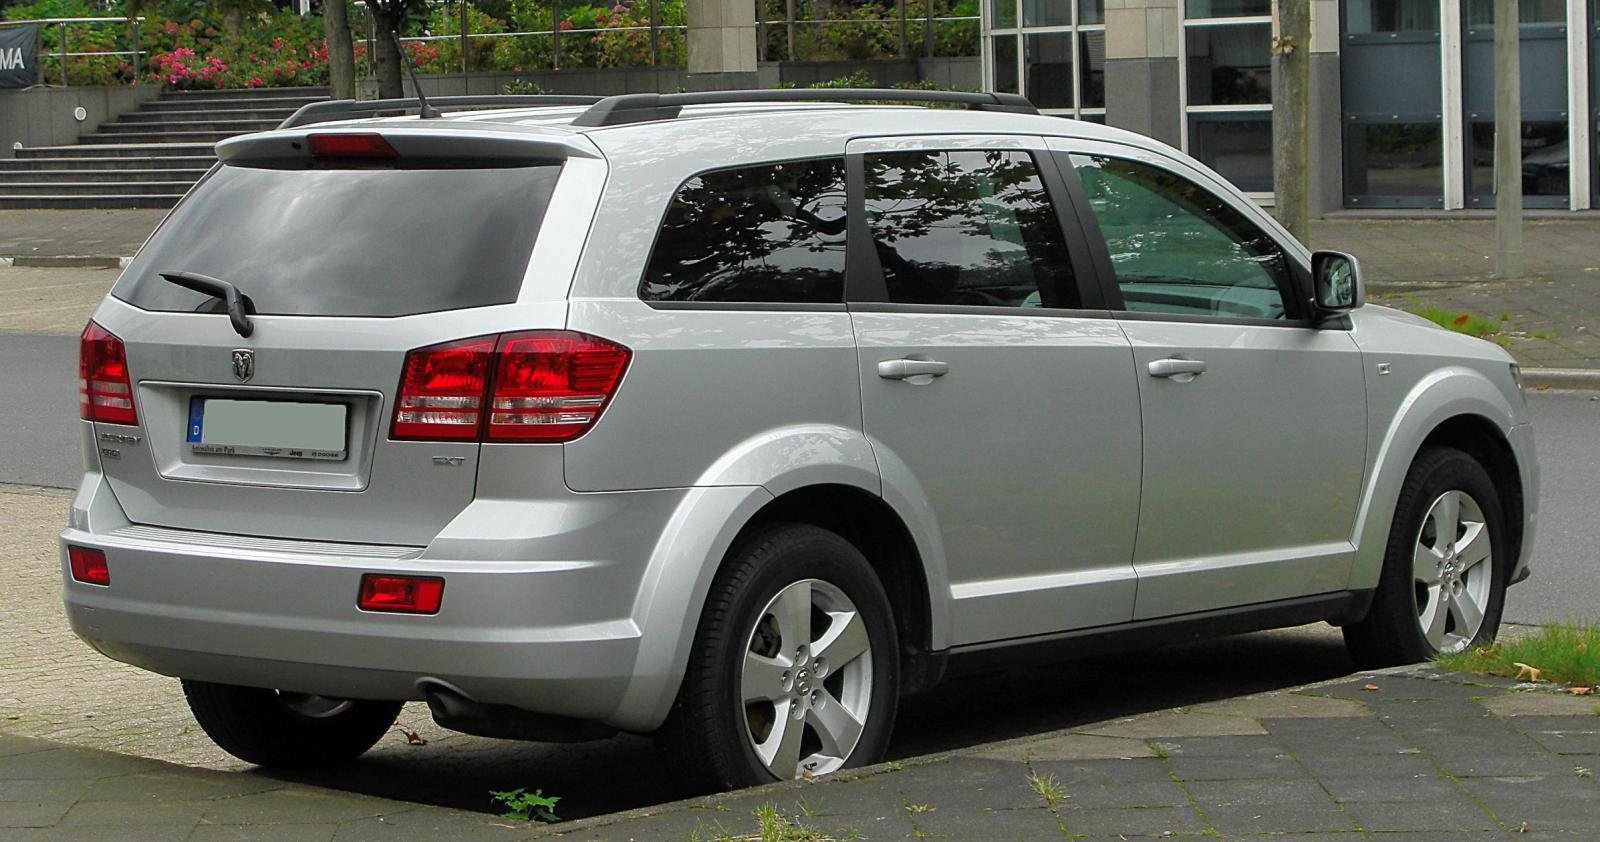 2010 dodge journey information and photos zombiedrive. Black Bedroom Furniture Sets. Home Design Ideas